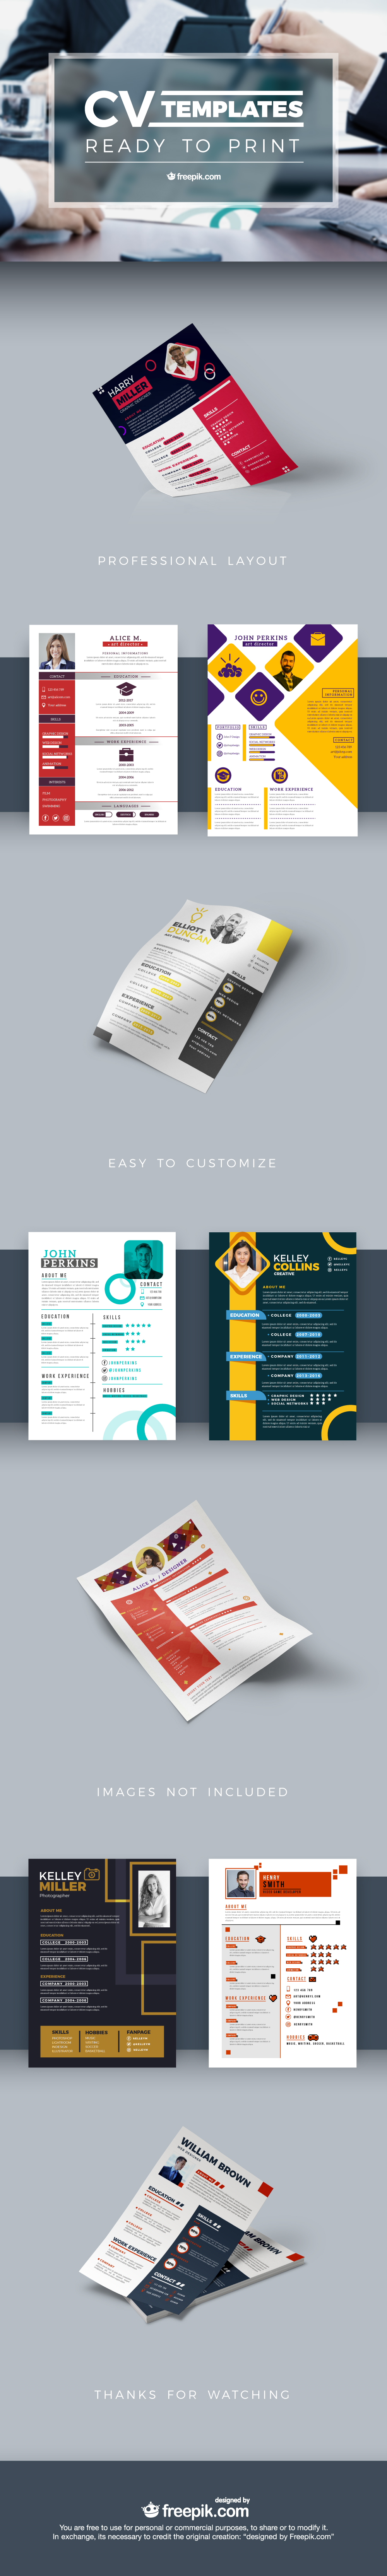 CV Templates Free Download